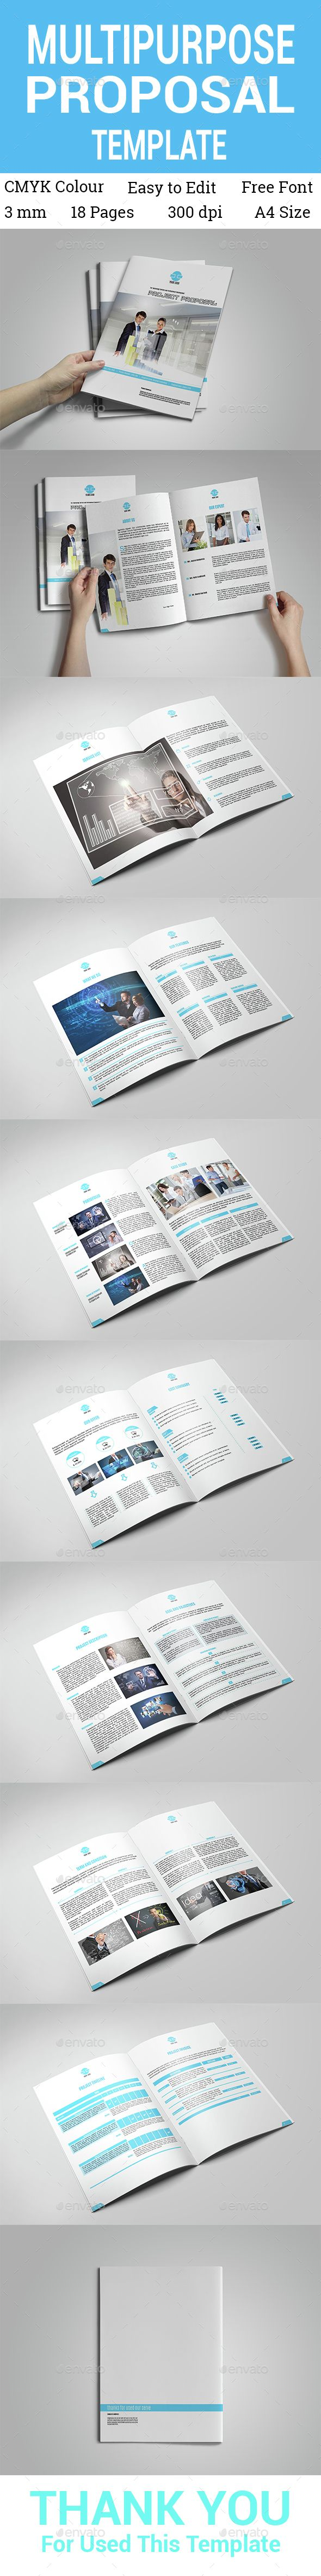 Multipurpose Proposal Template  Proposal Templates Proposals And